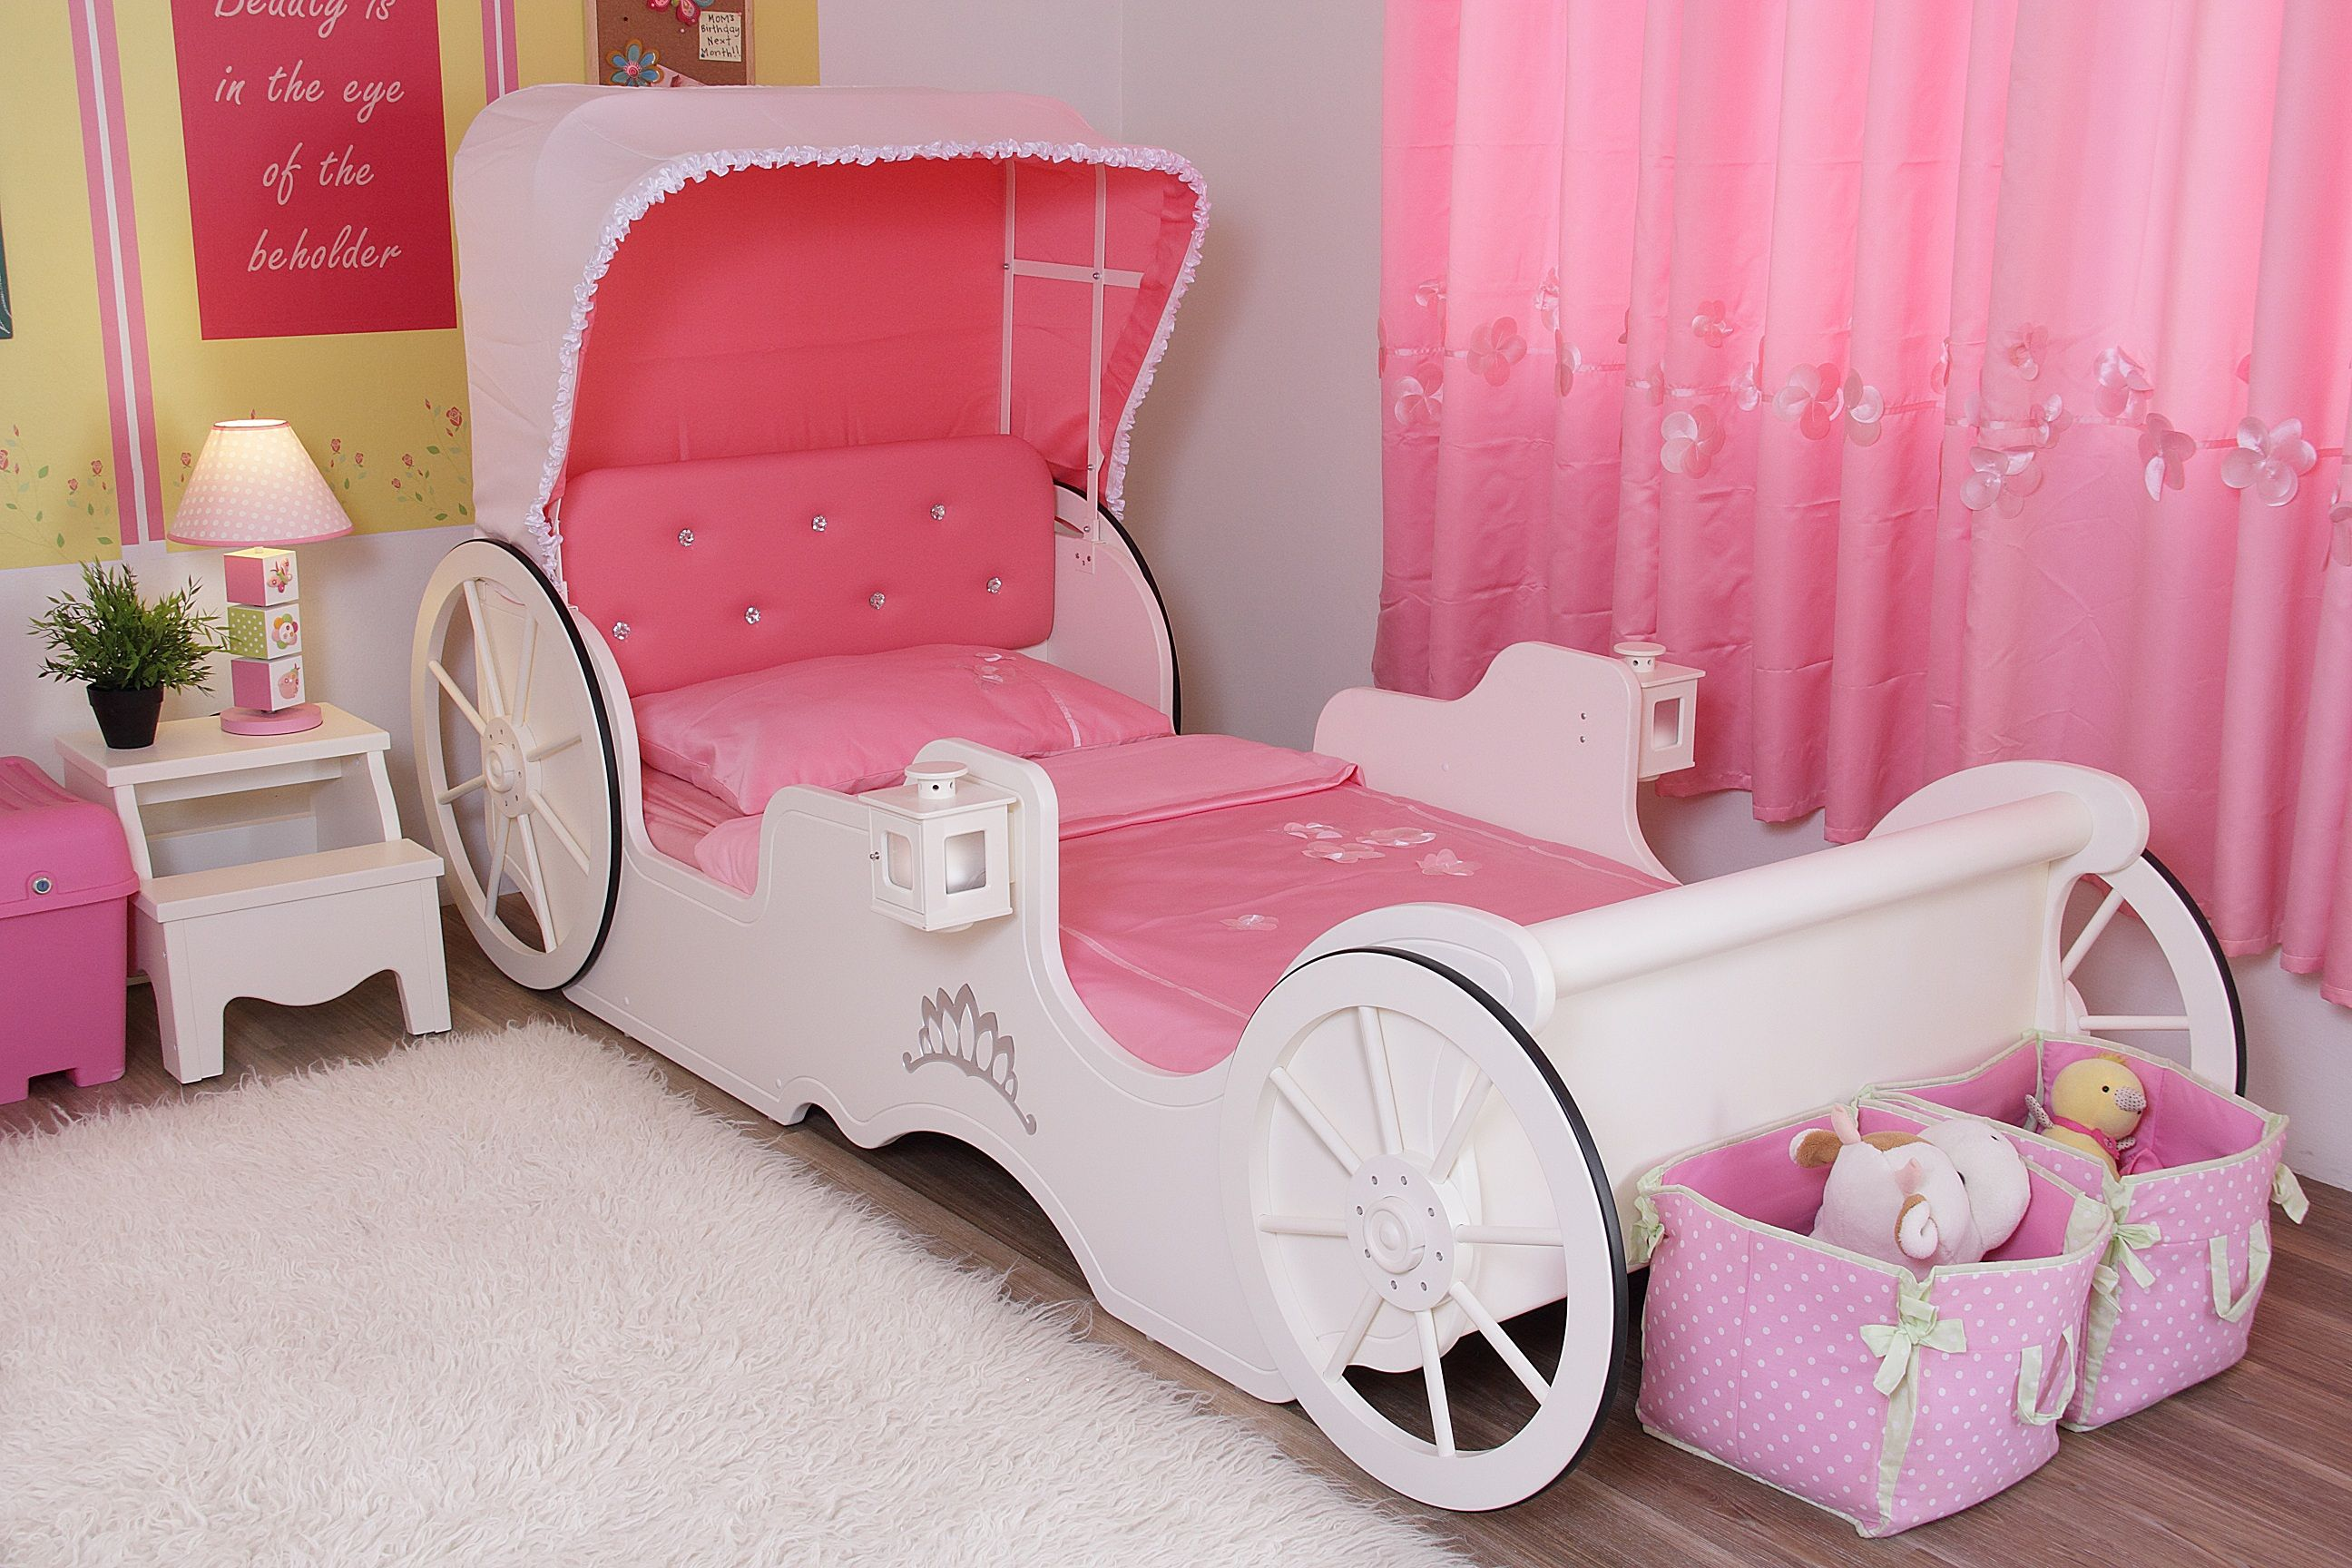 room sets pinterest uncategorized inc character cars cool trends furniture rooms curtains fascinating image disney set frozen decor to for the princess ideas monster and kit go bedroom